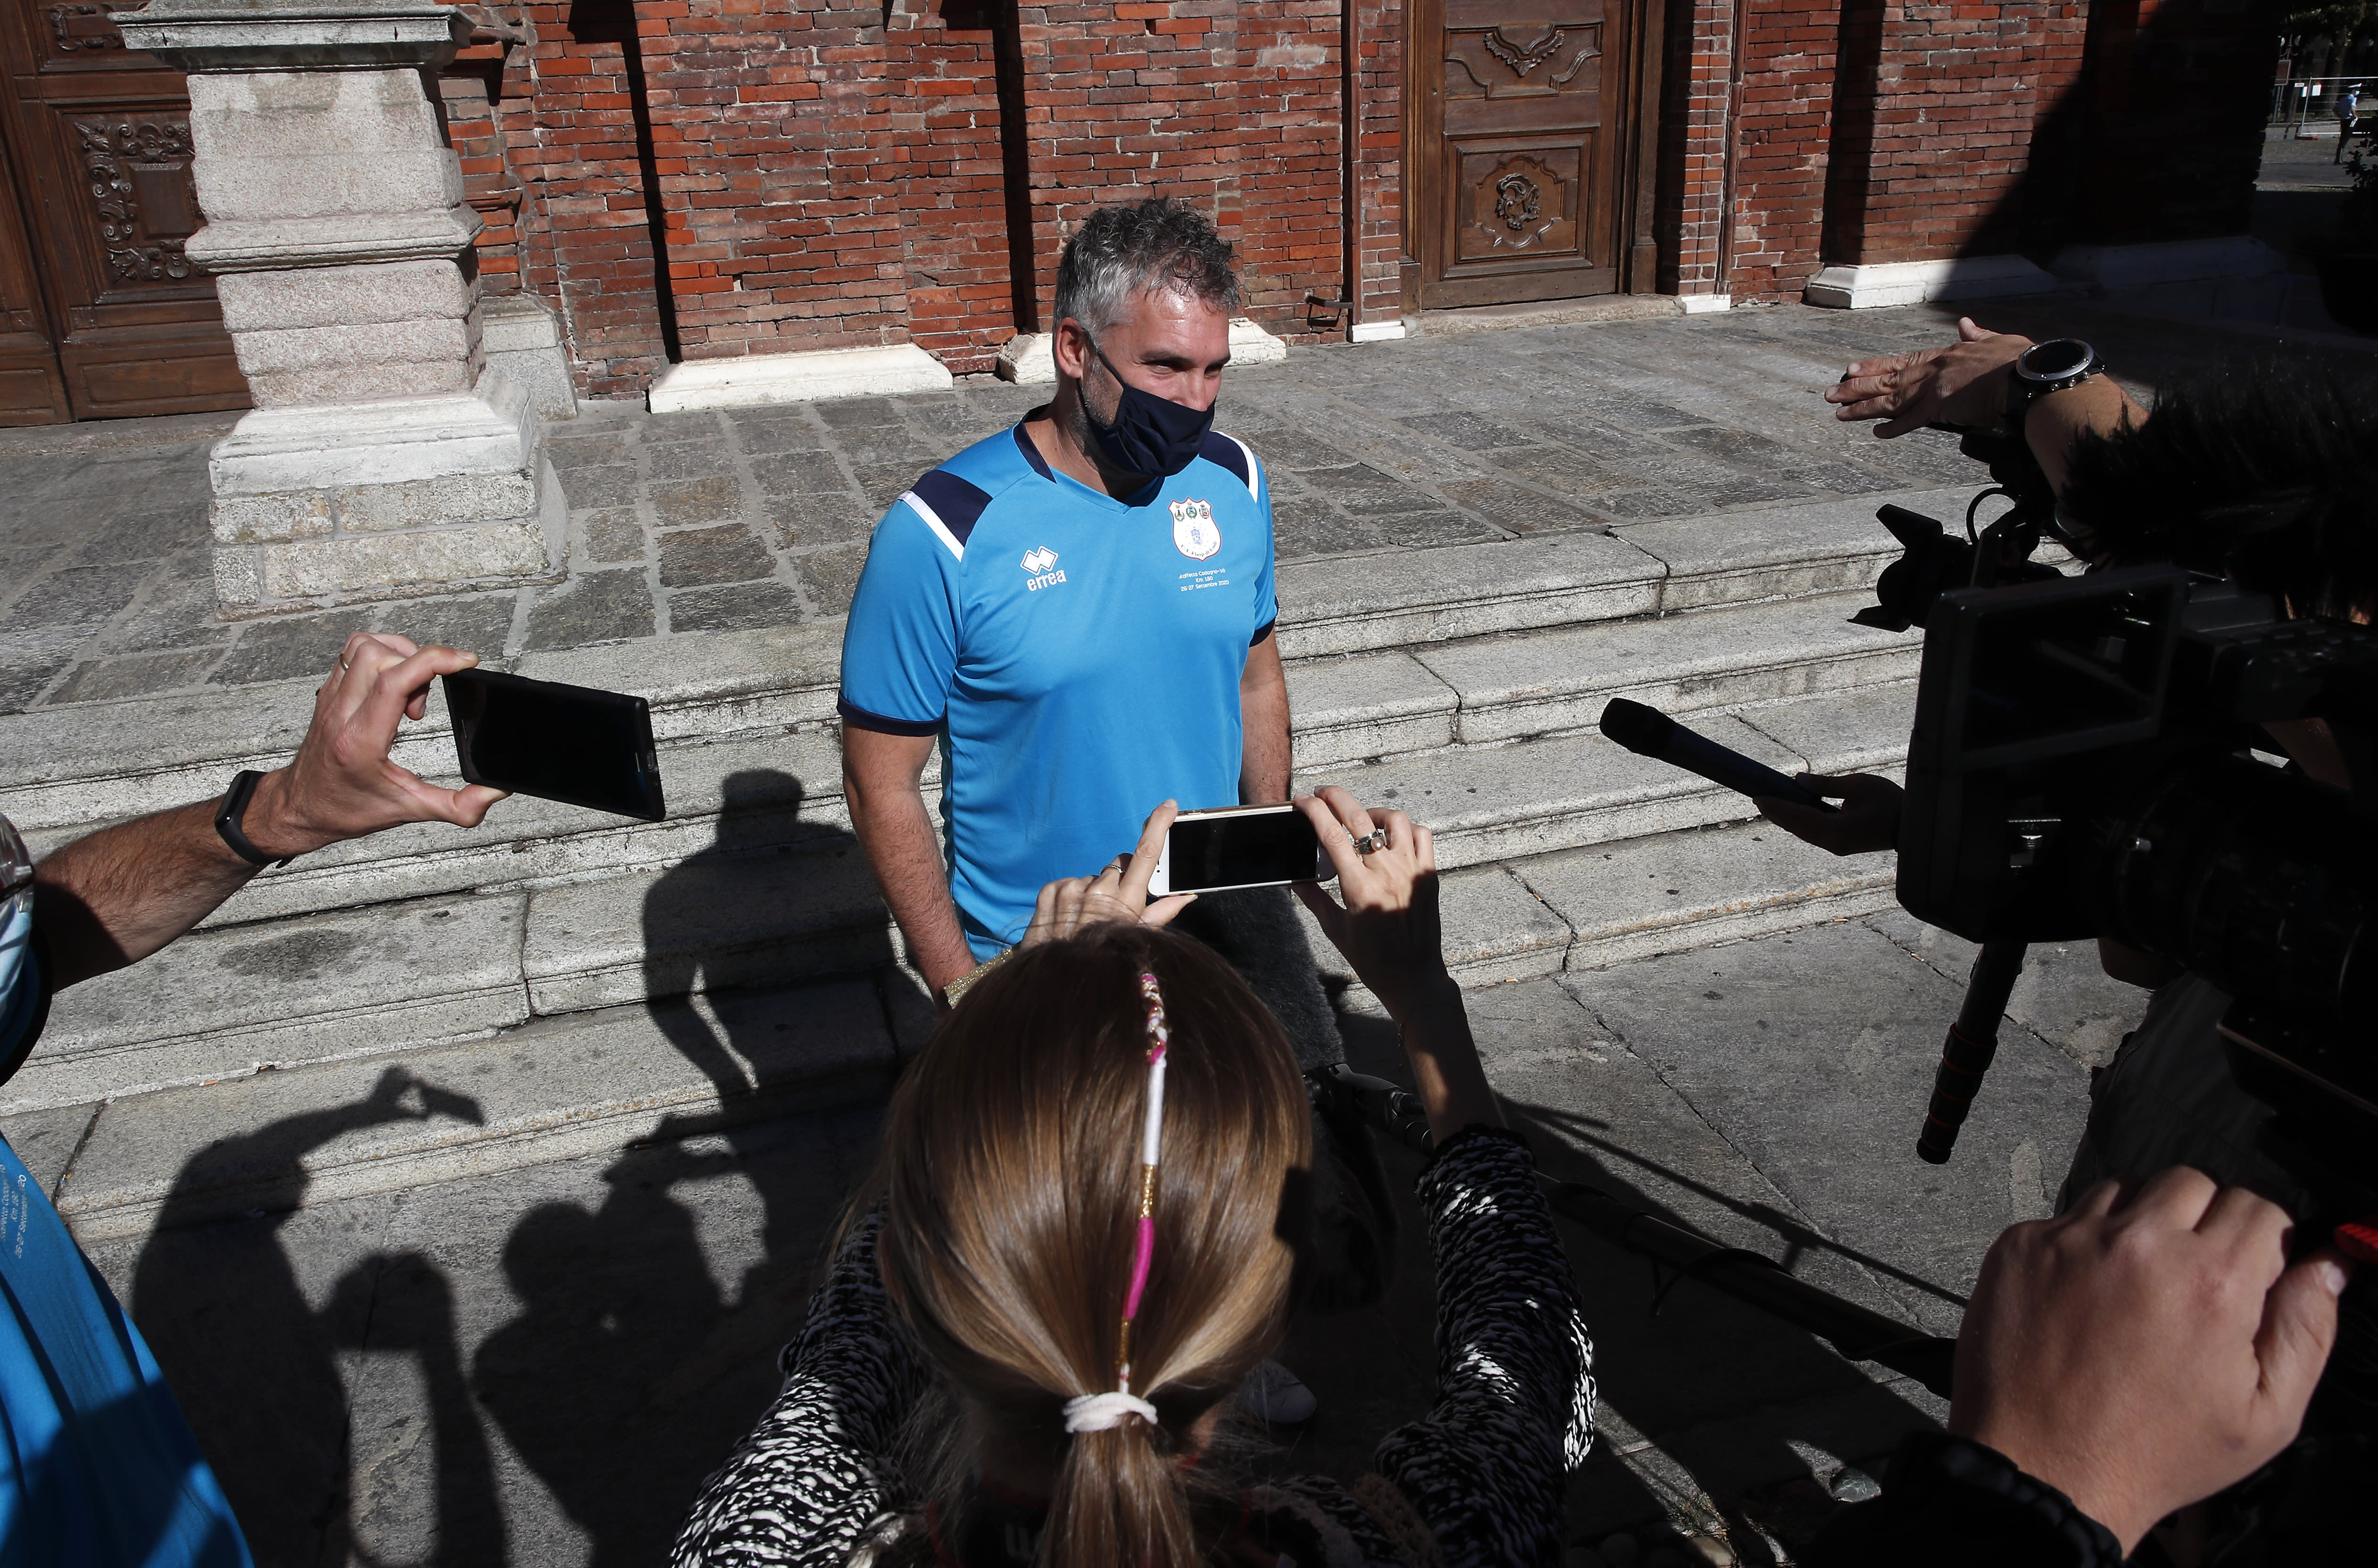 Mattia Maestri answers reporters' questions prior to the start of a 180-kilometer relay race, in Codogno, Italy, Saturday, Sept. 26, 2020. Italy's coronavirus Patient No. 1, whose case confirmed one of the world's deadliest outbreaks was underway, is taking part in a 180-kilometer relay race as a sign of hope for COVID victims after he himself recovered from weeks in intensive care. Mattia Maestri, a 38-year-old Unilever manager, was suited up Saturday for the start of the two-day race between Italy's first two virus hotspots. It began in Codogno, where Maestri tested positive Feb. 21, and was ending Sunday in Vo'Euganeo, where Italy's first official COVID death was recorded the same day. (AP Photo/Antonio Calanni)